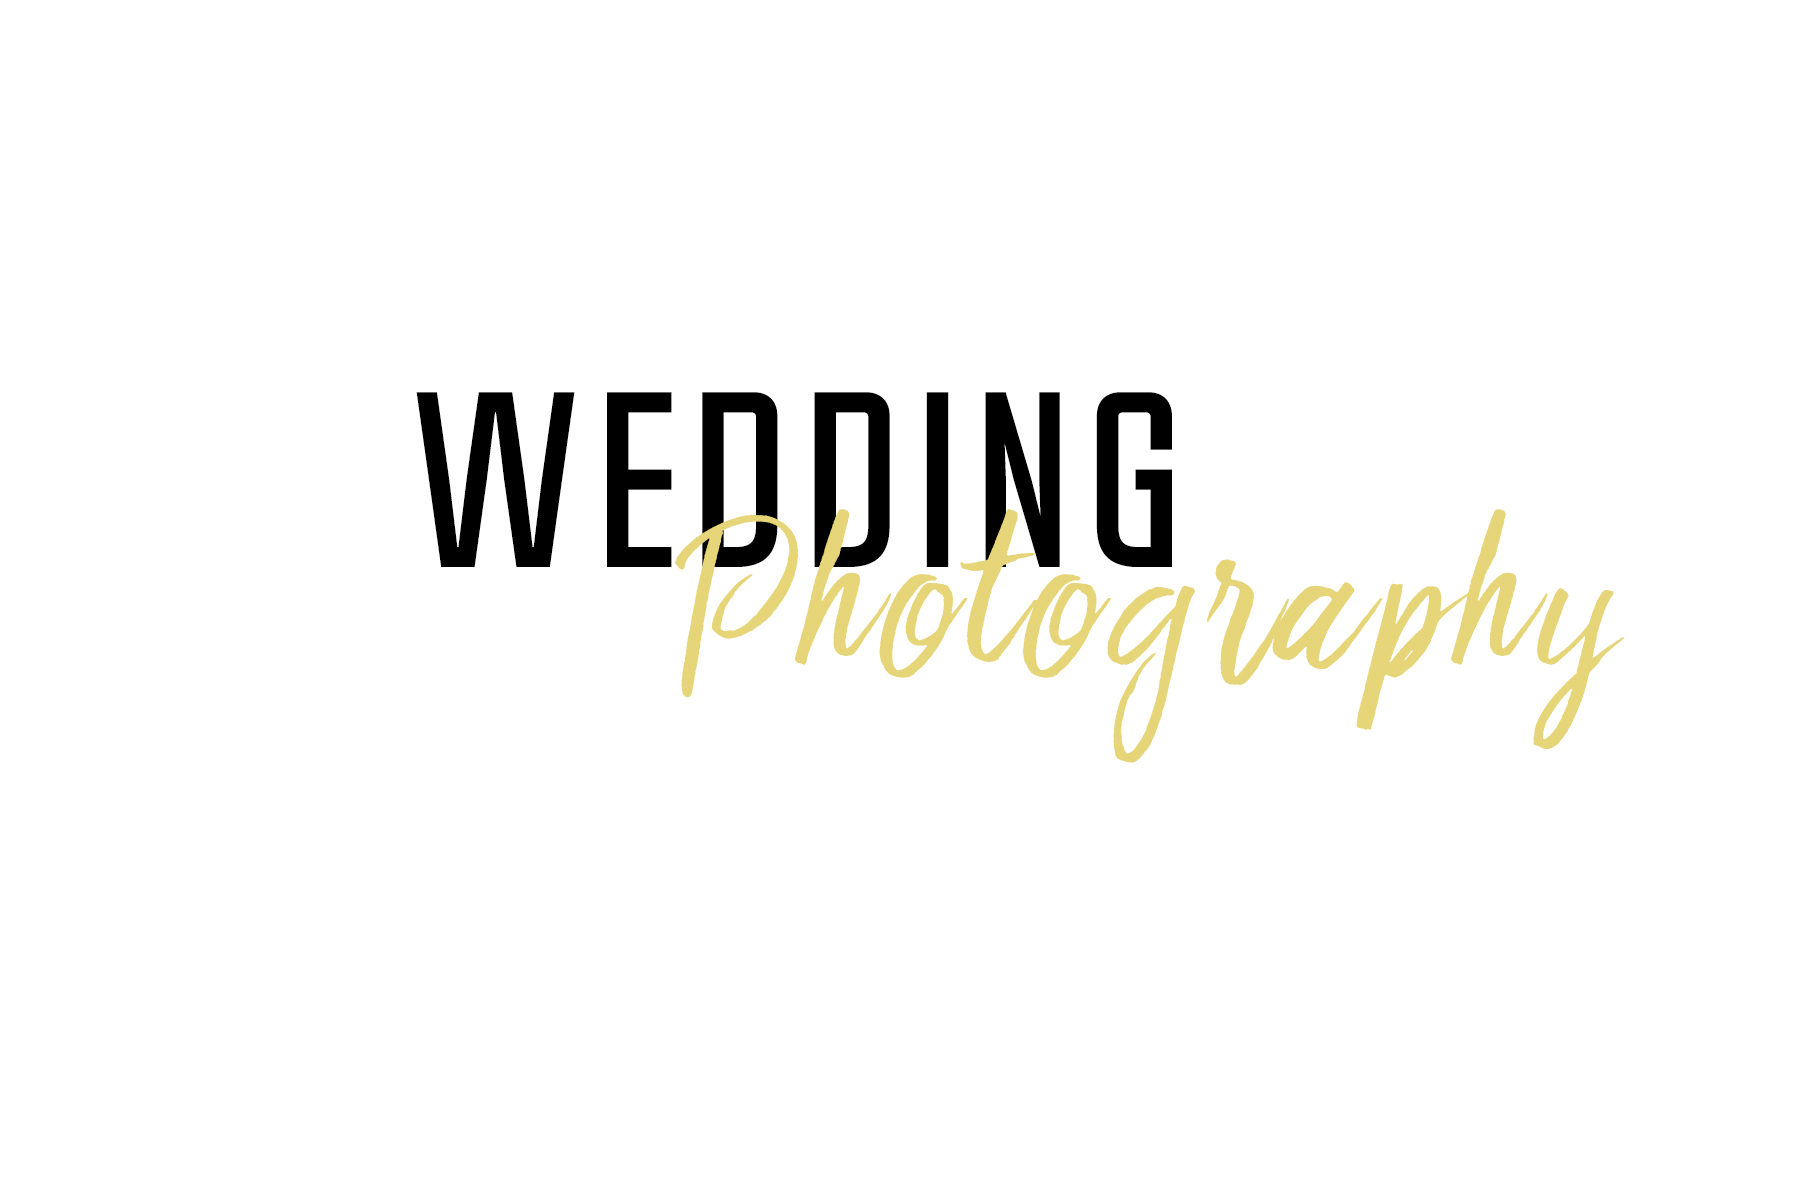 wedding photography.jpg